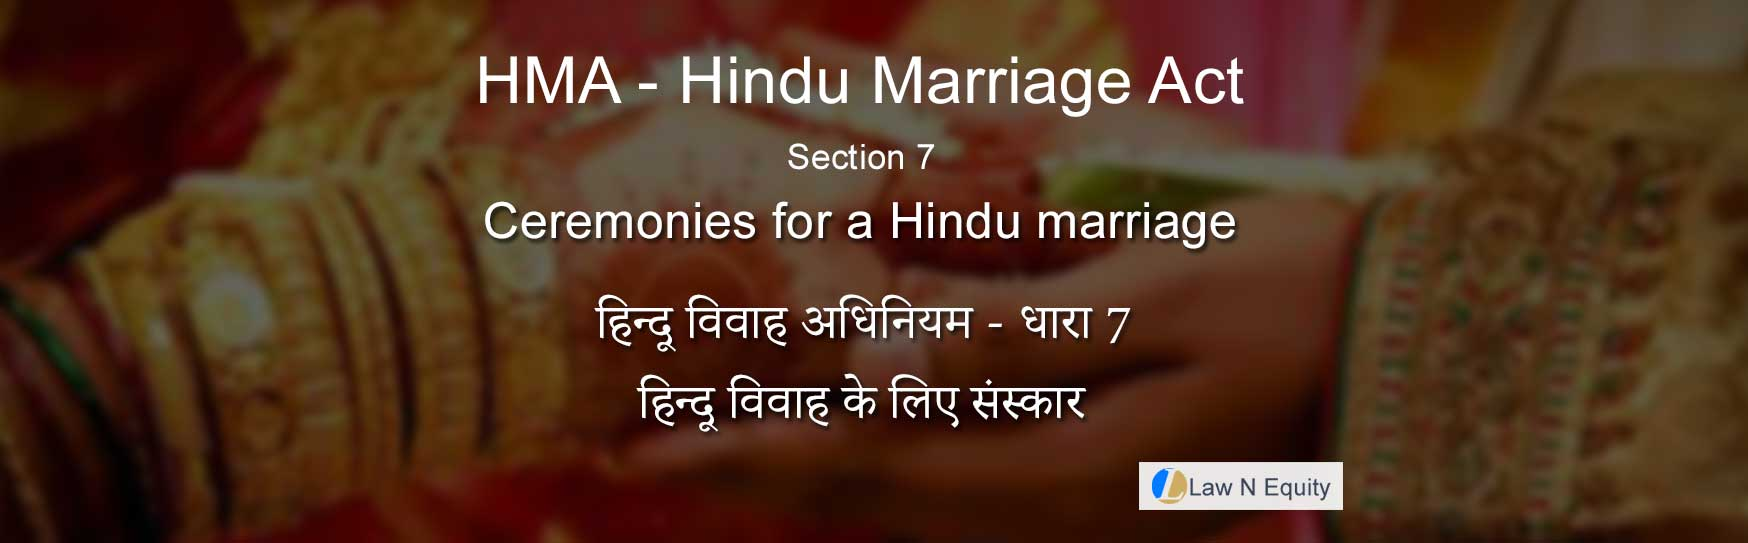 Hindu Marriage Act(HMA) Section 7